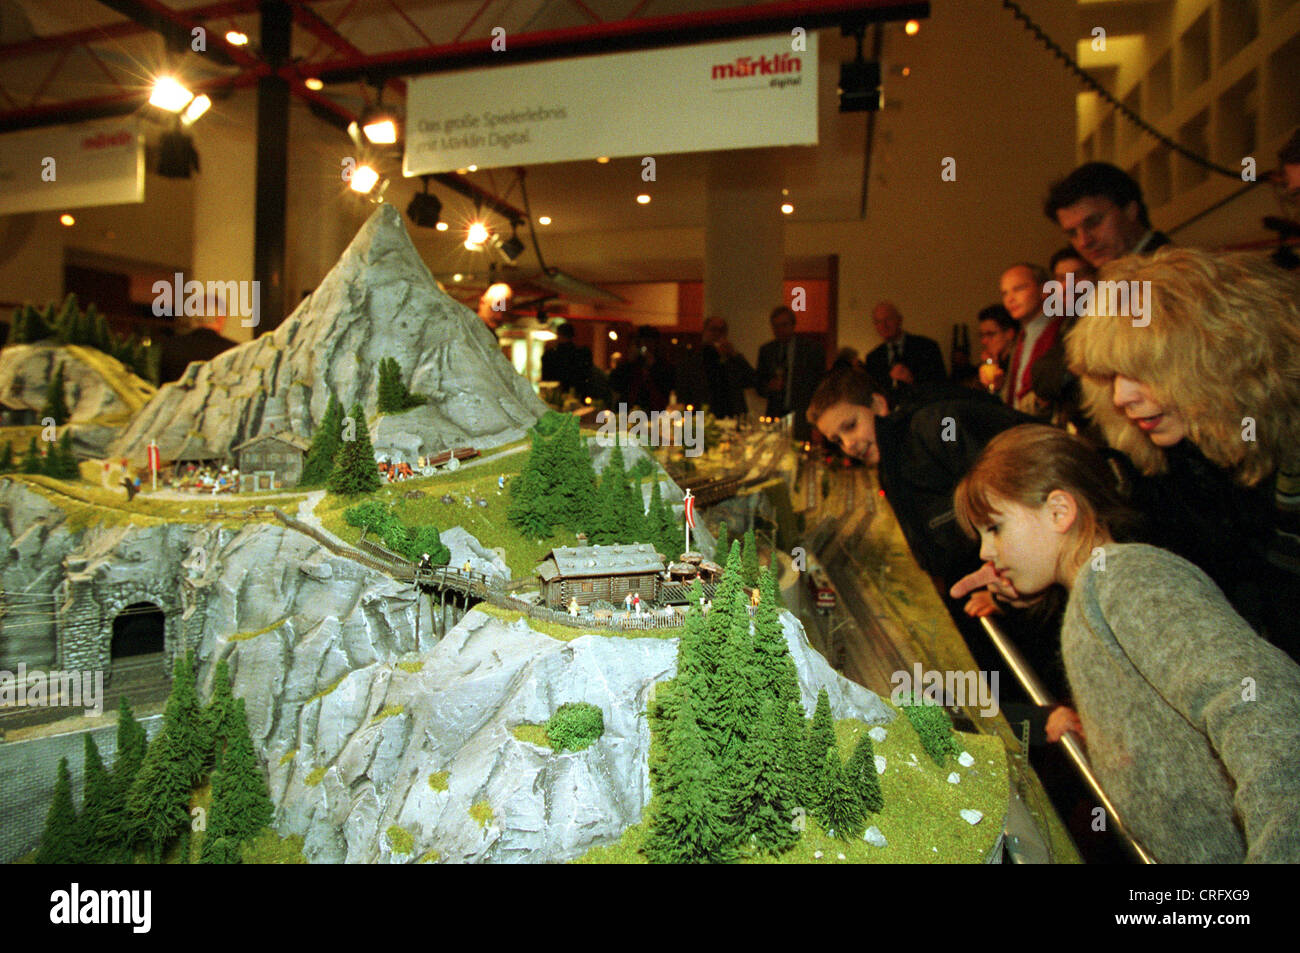 Märklin germany stockfotos bilder alamy